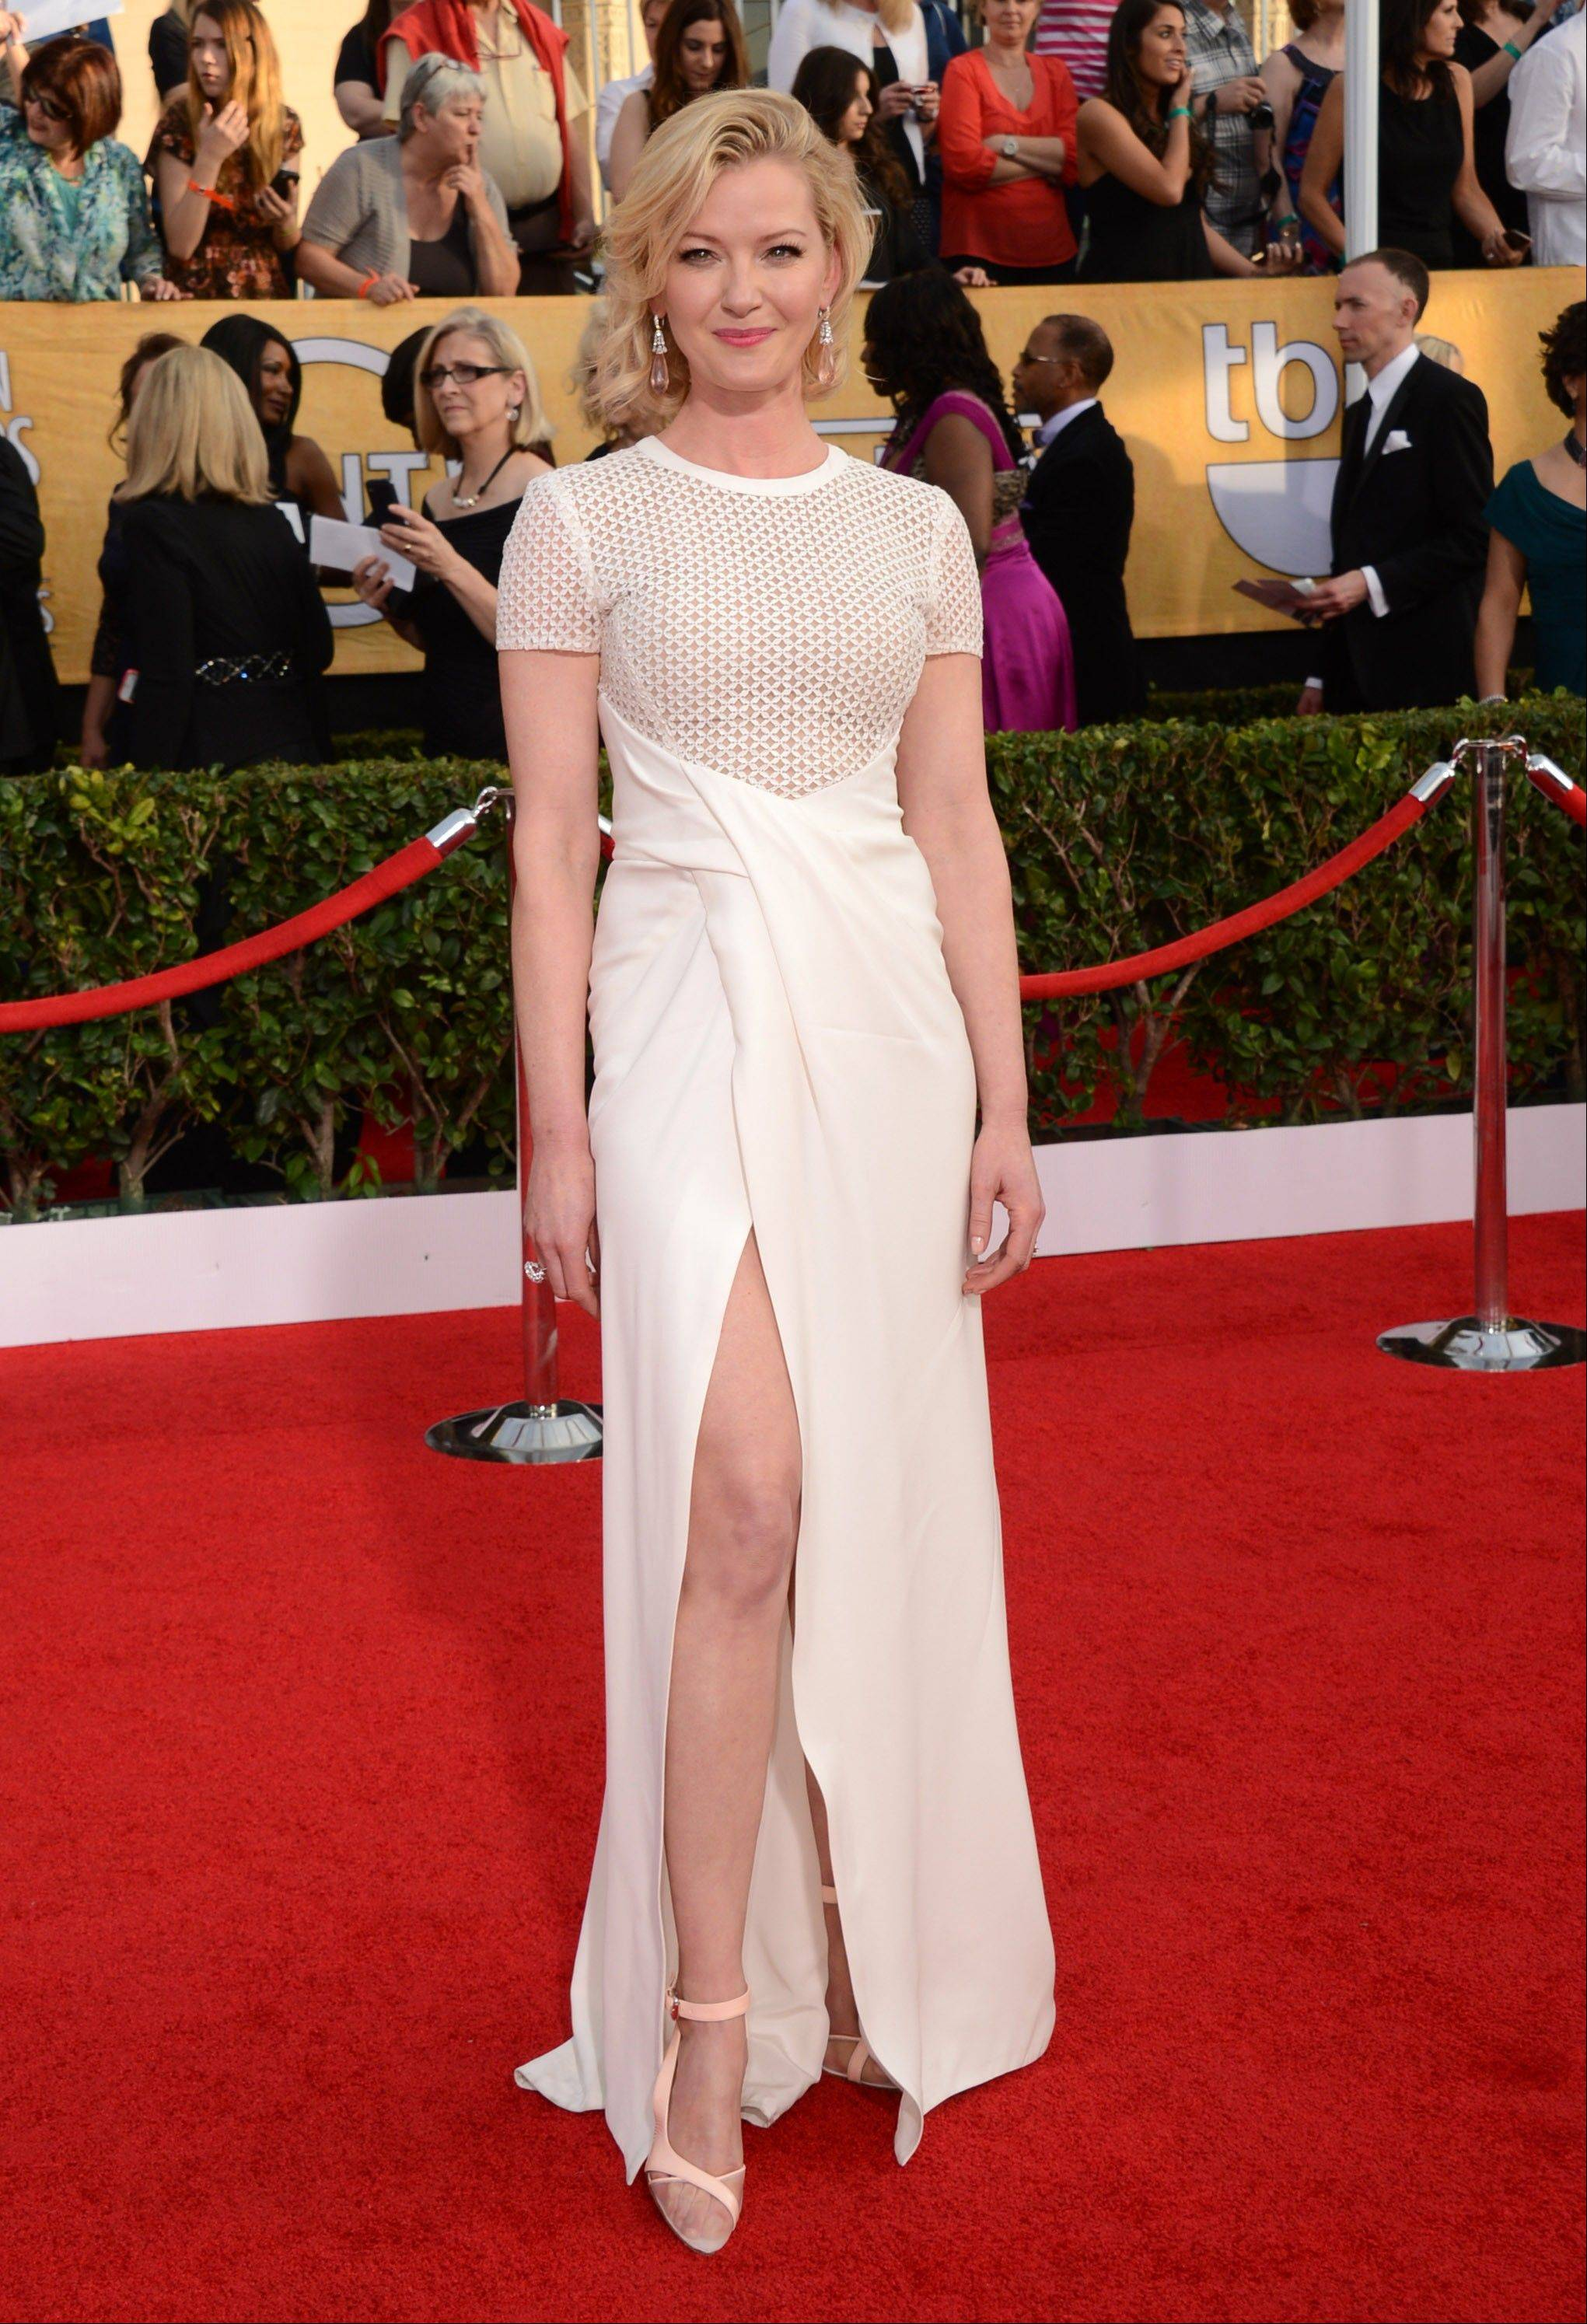 Gretchen Mol arrives at the 20th annual Screen Actors Guild Awards.